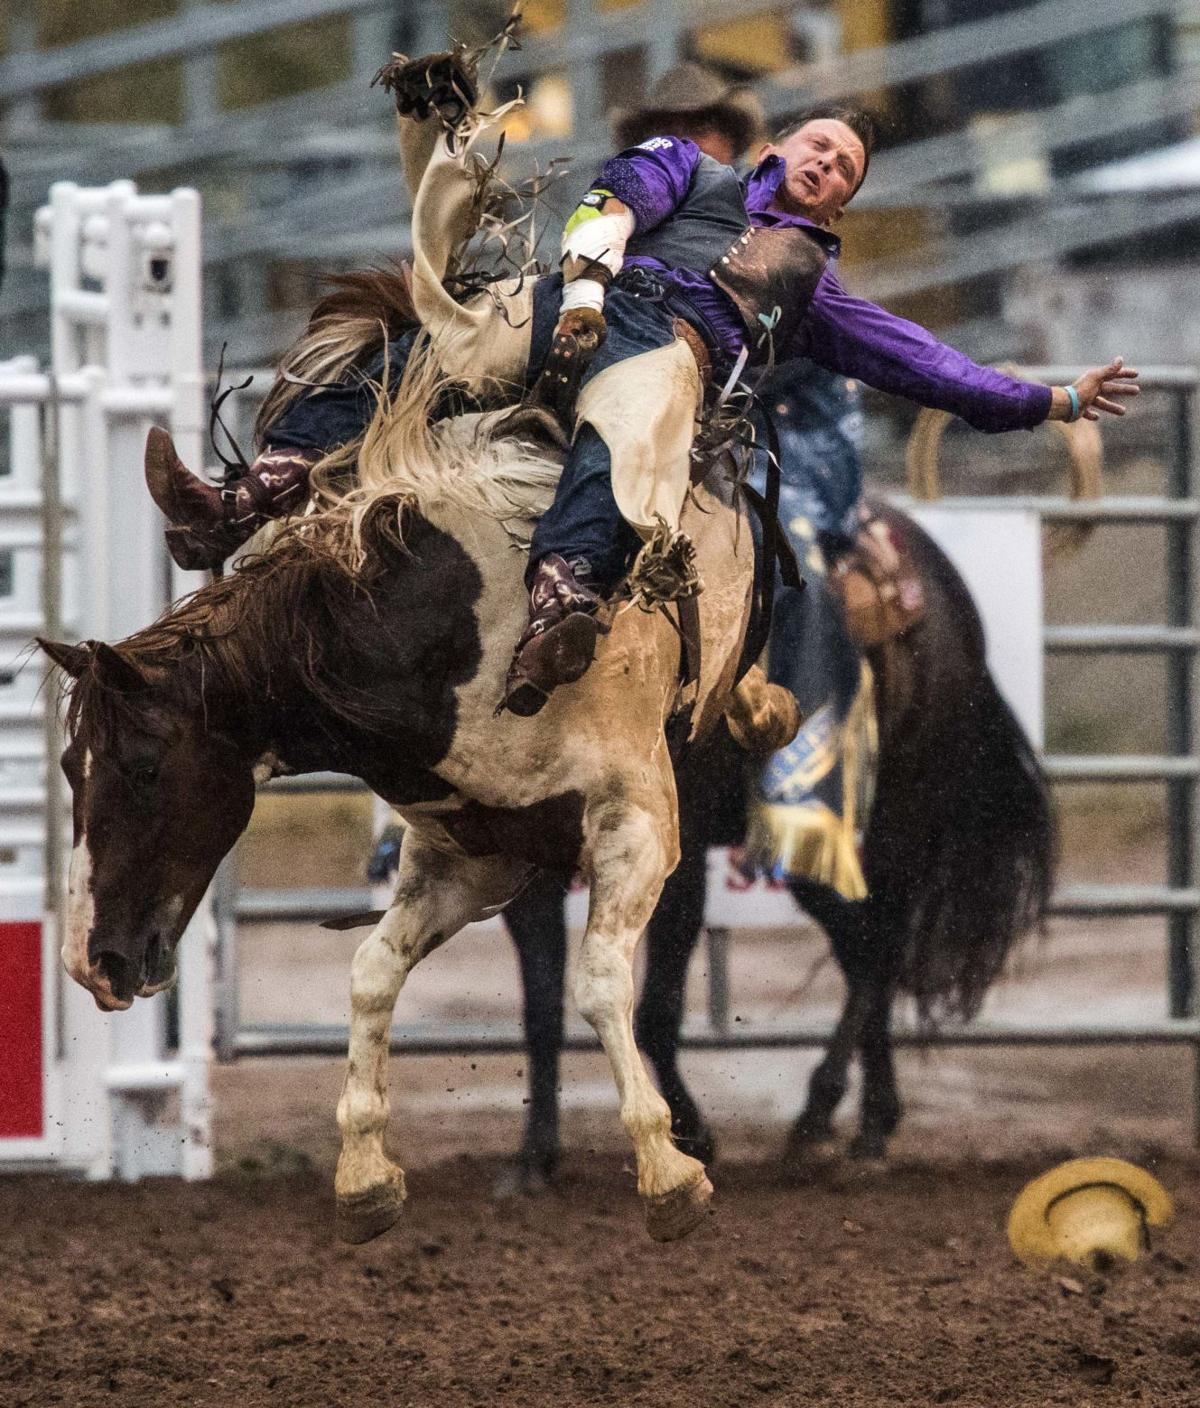 Rodeo Clown Loves Entertaining Crowd With Self Deprecating